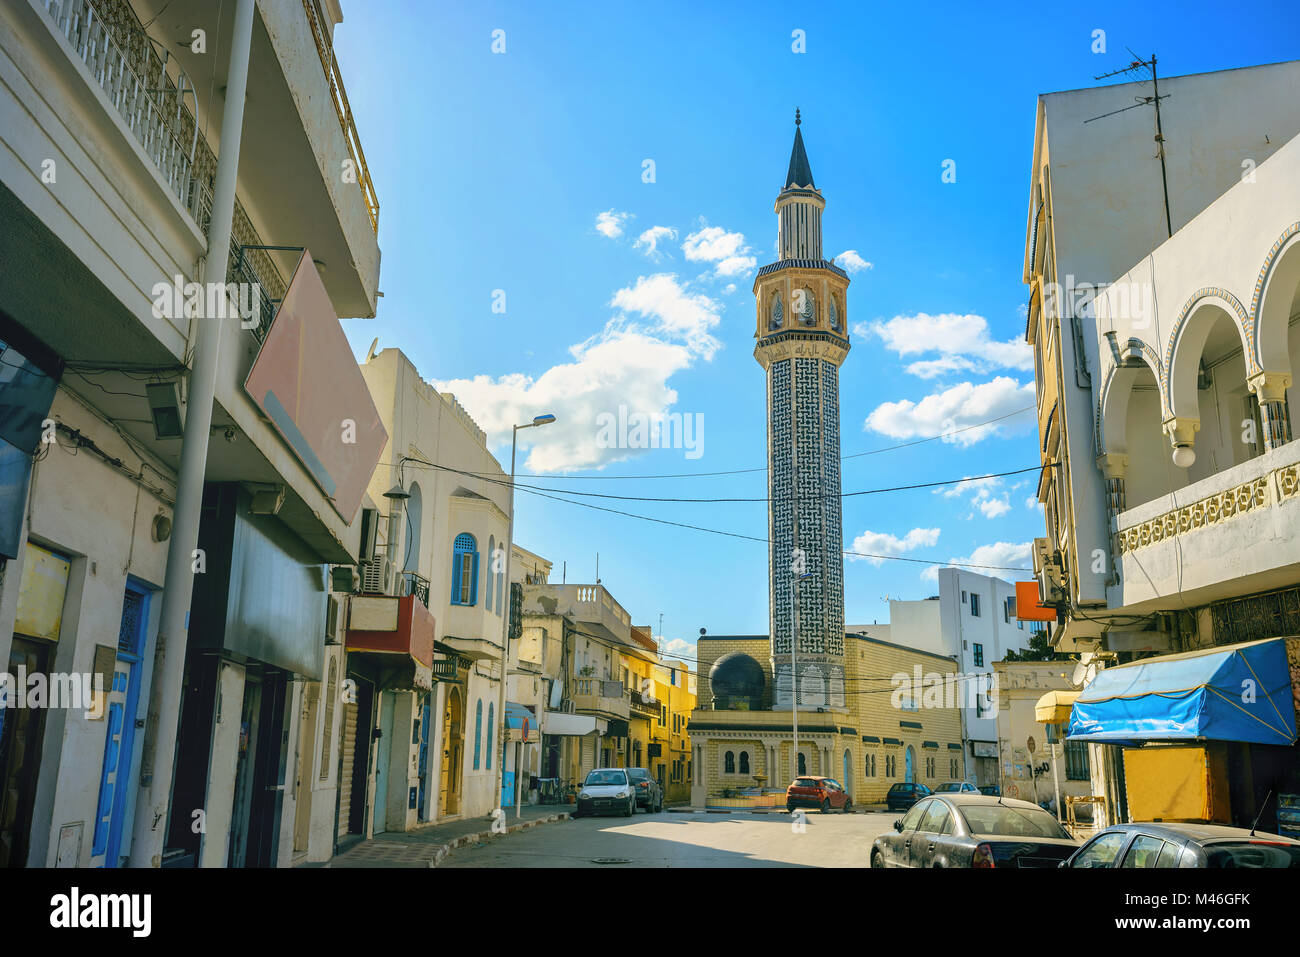 Cityscape with tall minaret tower of mosque  in Nabeul. Tunisia - Stock Image